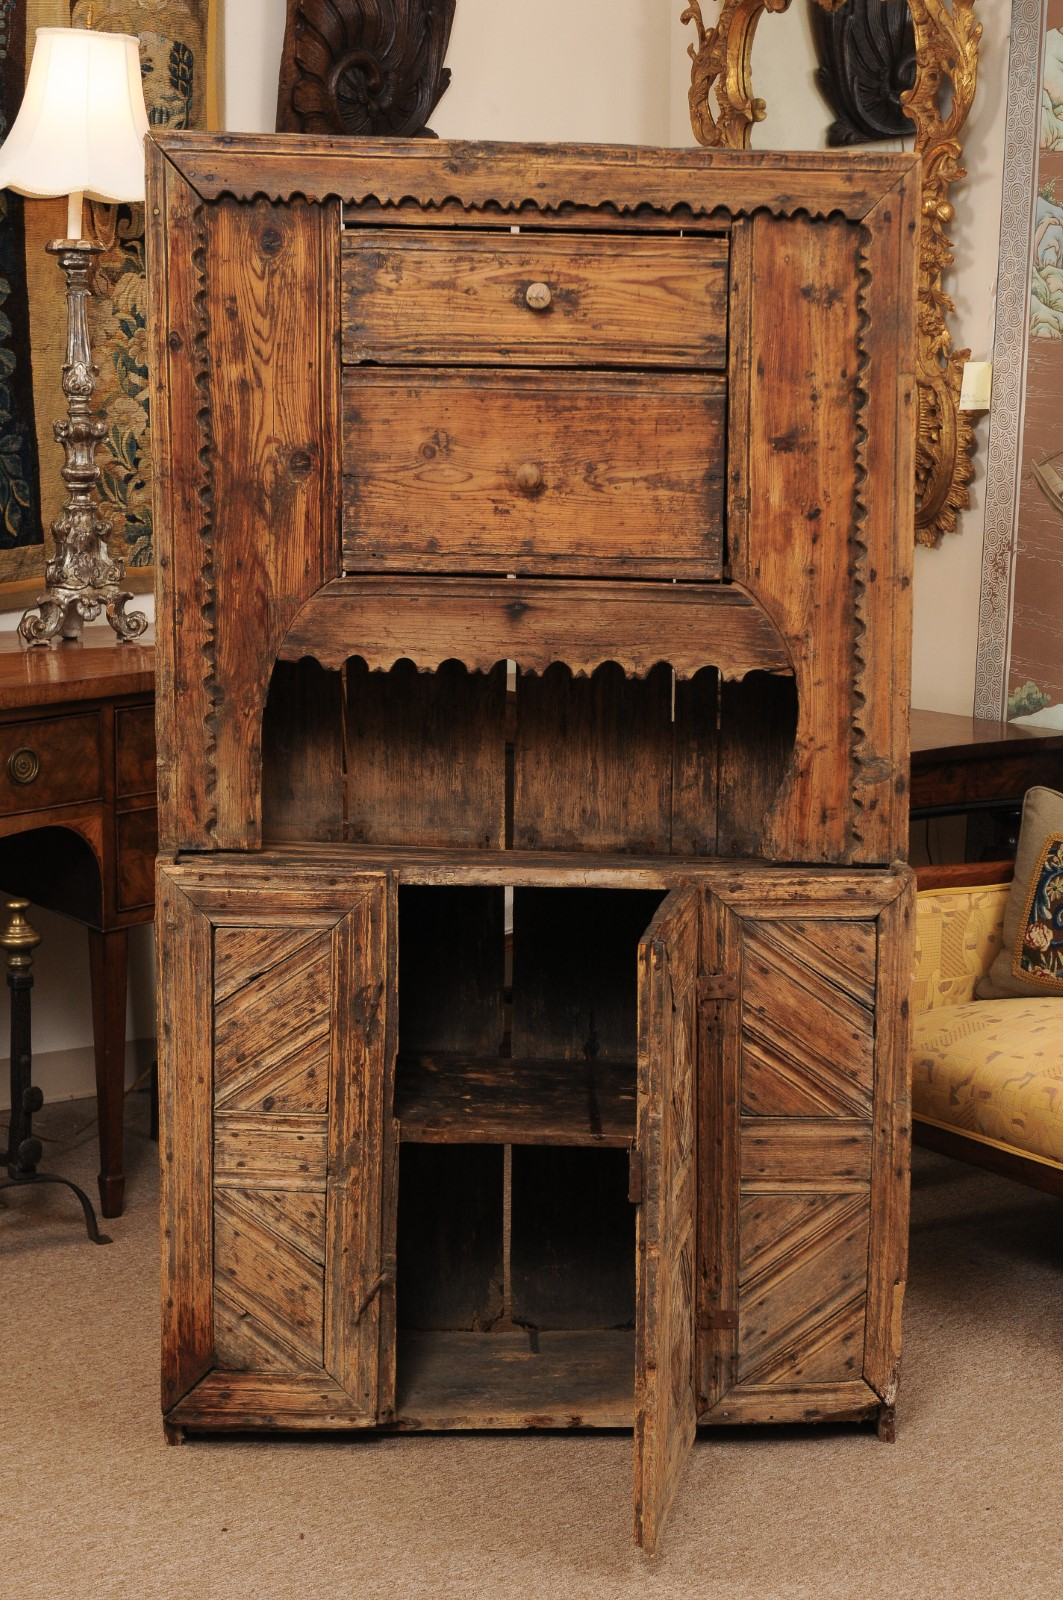 17th Century Spanish Pine Cabinet with 2 Drawers & Open ... on Corner Sconce Shelf Cabinet id=37197